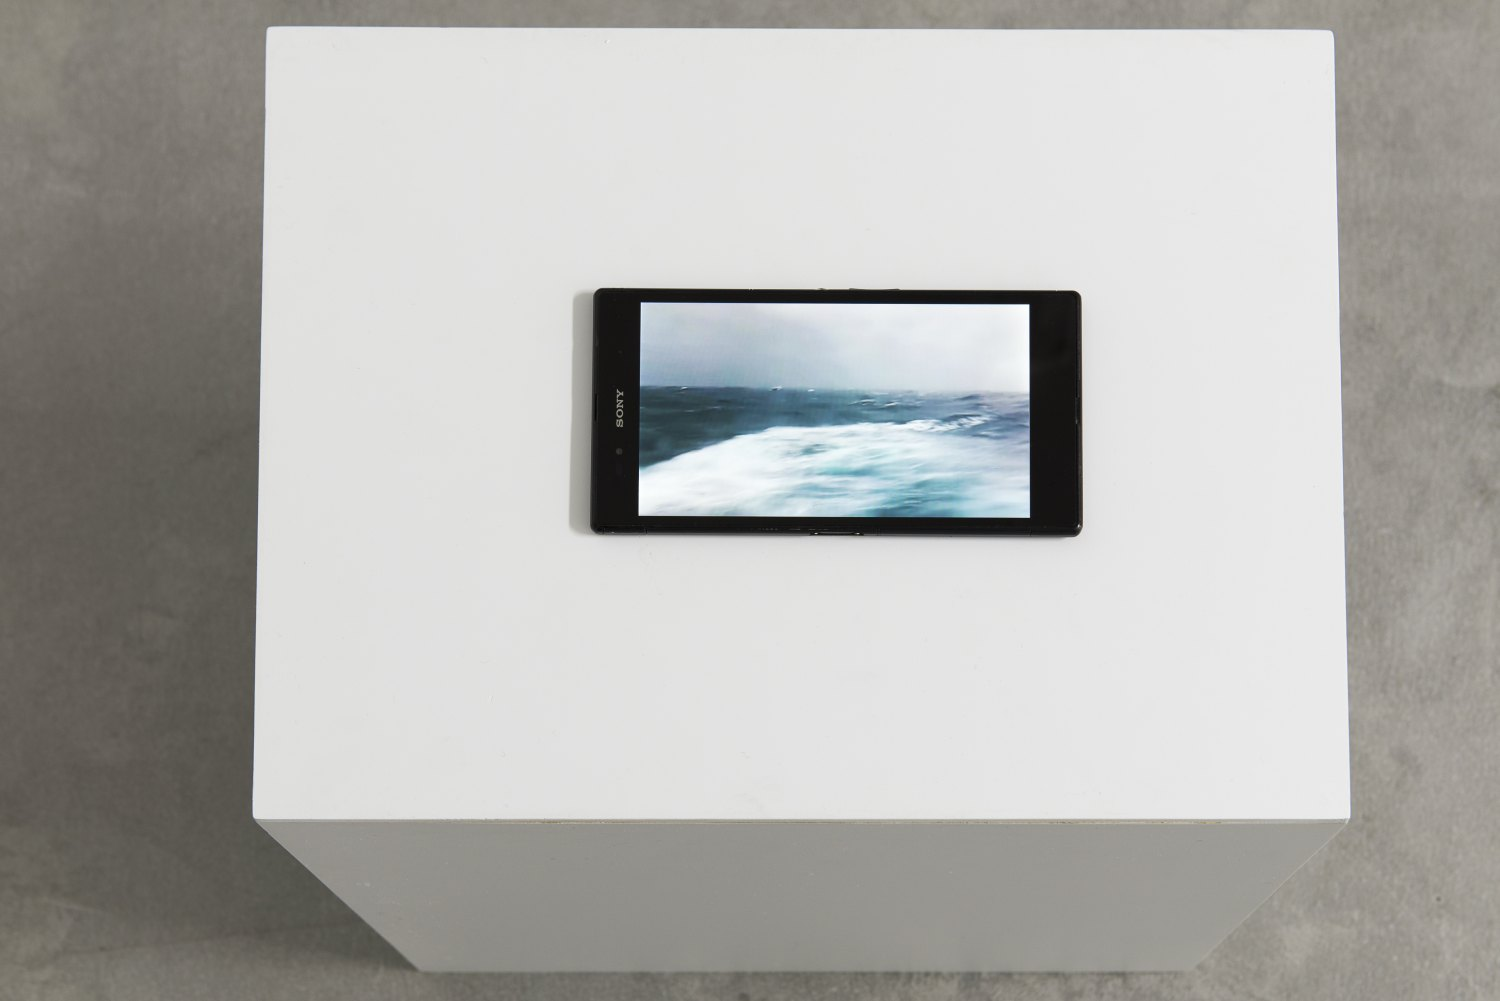 Sean Snyder Tableau Bateau, 2016-2017 random video loop with audio on hacked Sony Xperia Z Ultra, displayed on PVC structure, 40 cm x 40 cm x 30 cm